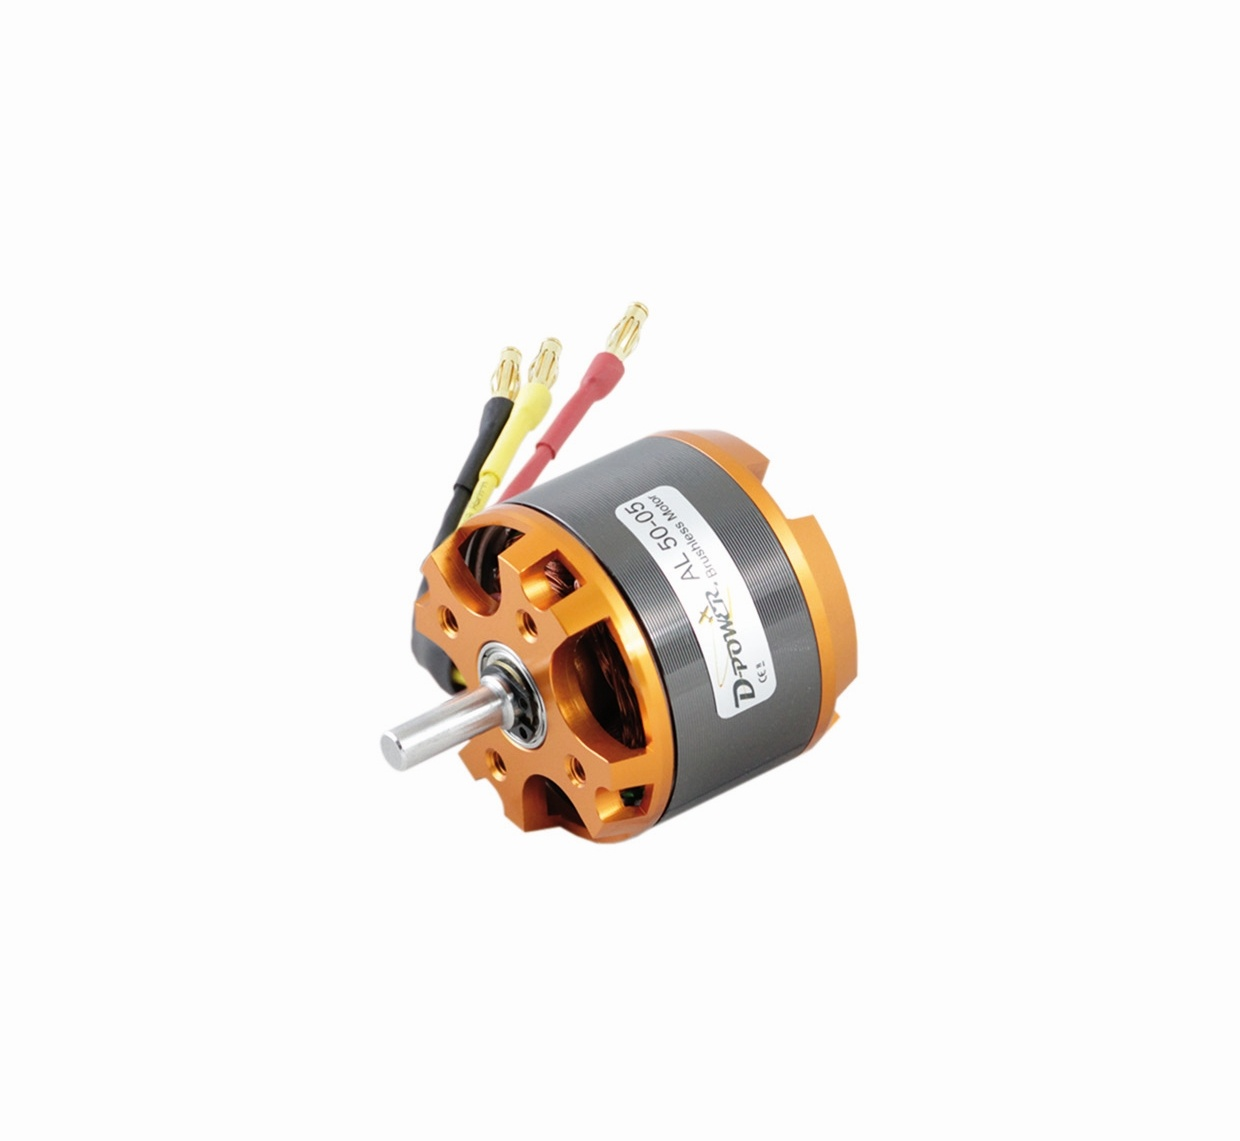 D power al 50 05 brushless motor d power webshop for D and a motors